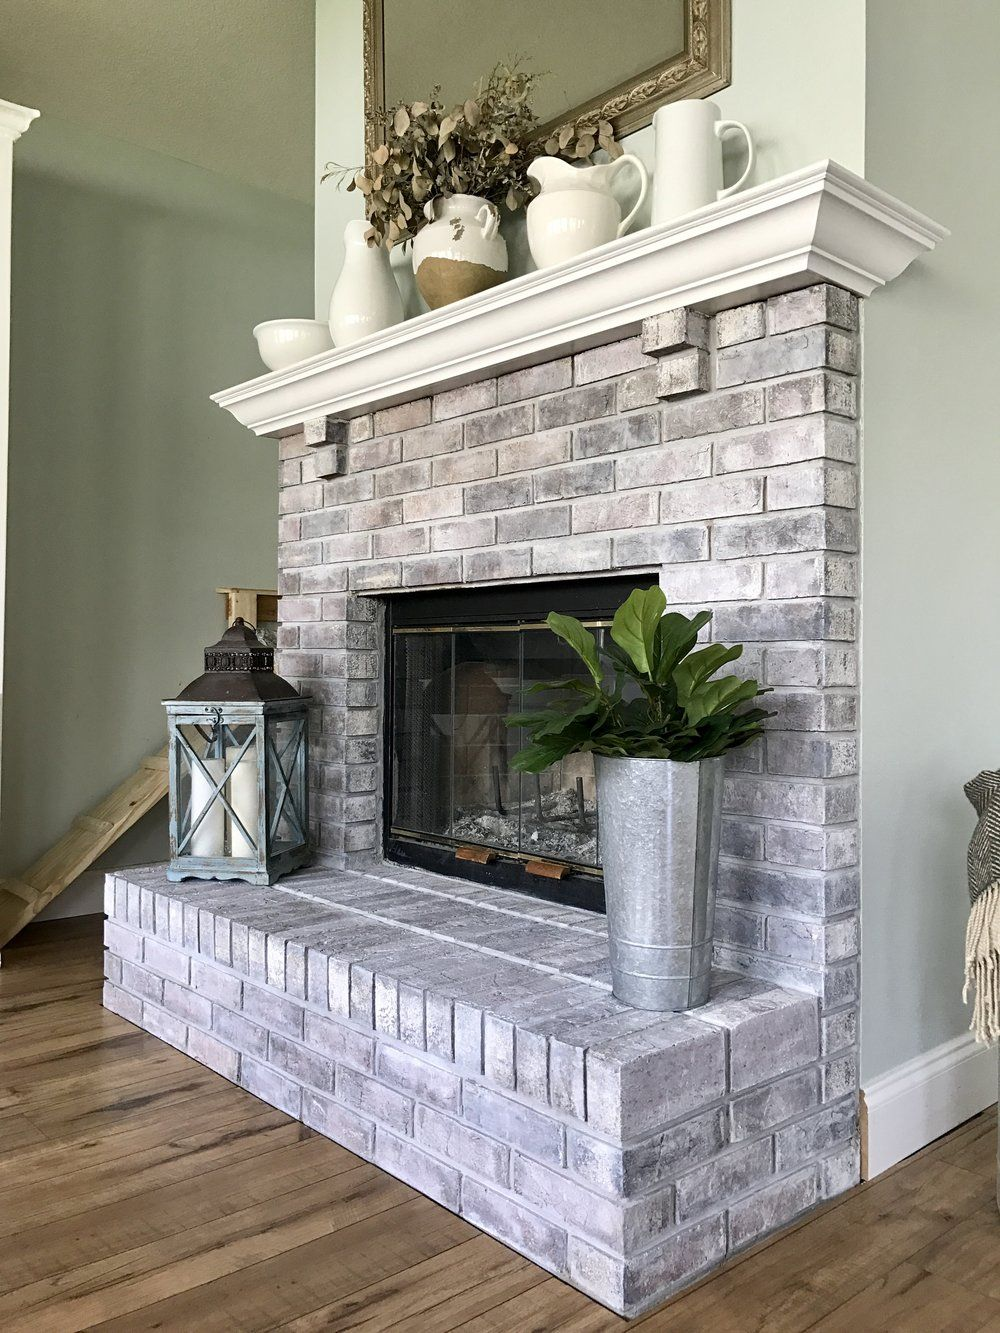 How to Whitewash a Brick Fireplace This Hiatus For the Home in